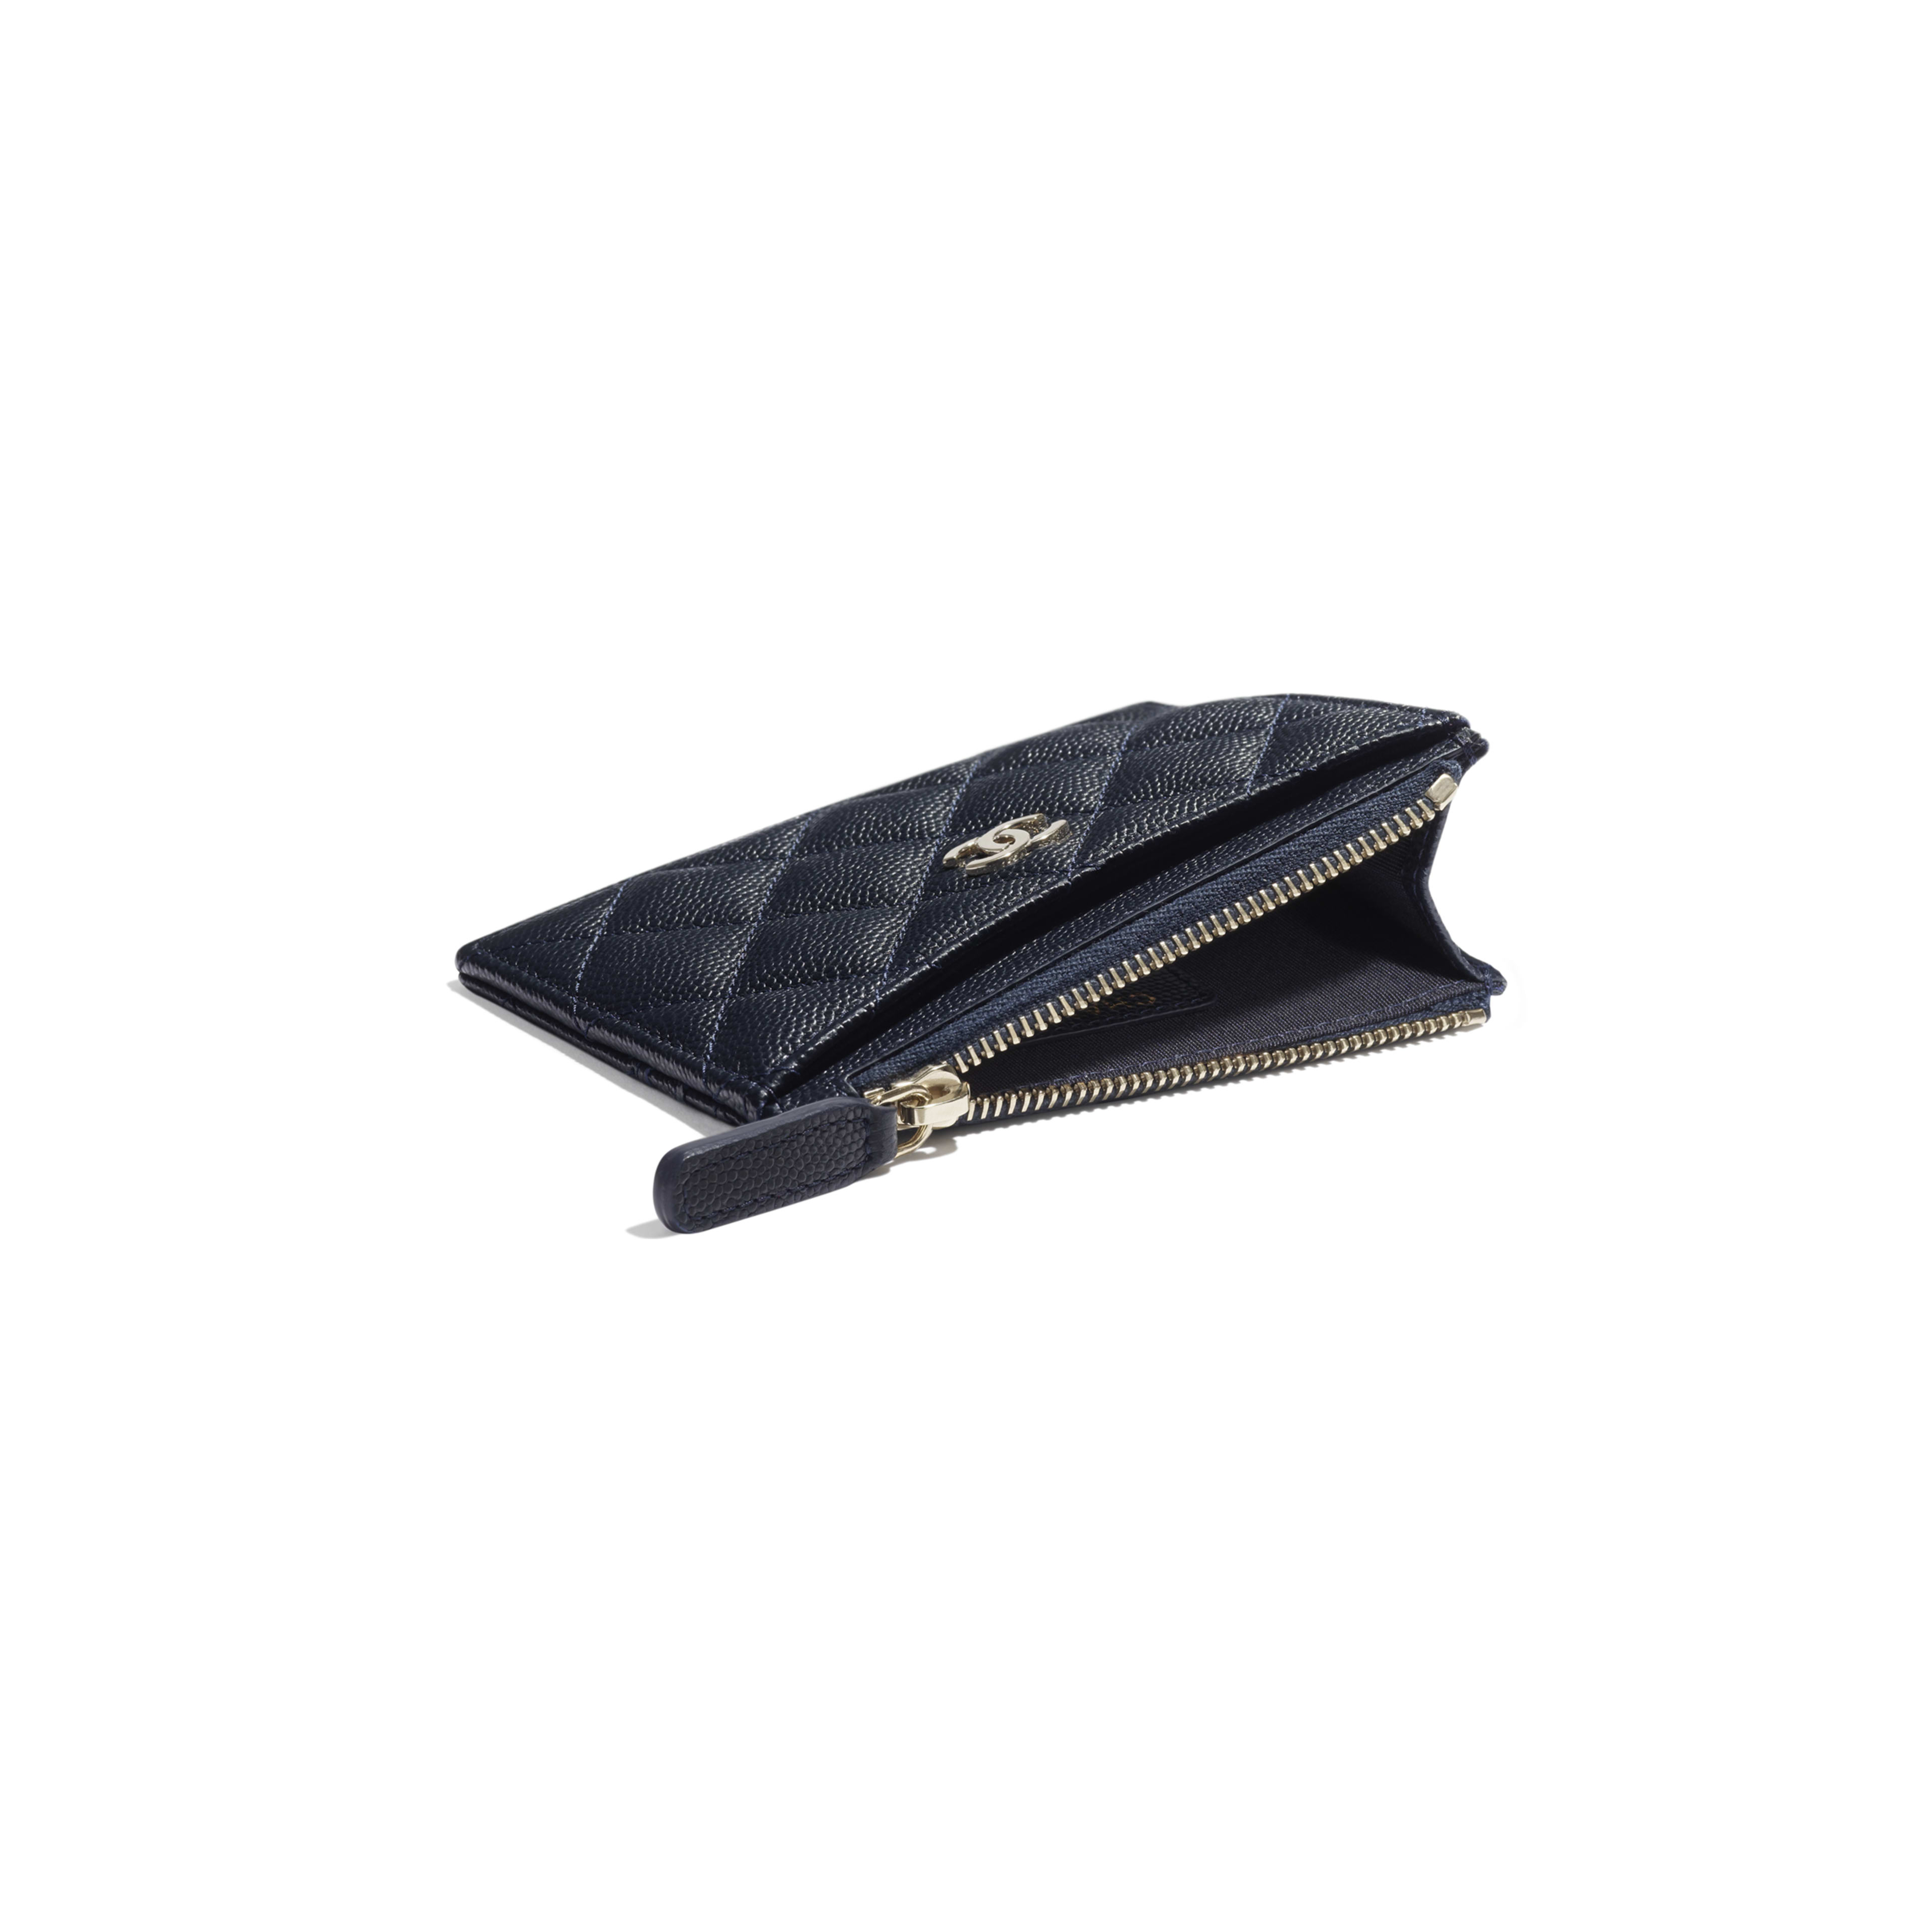 Classic Card Holder - Navy Blue - Grained Calfskin & Gold-Tone Metal - Extra view - see full sized version